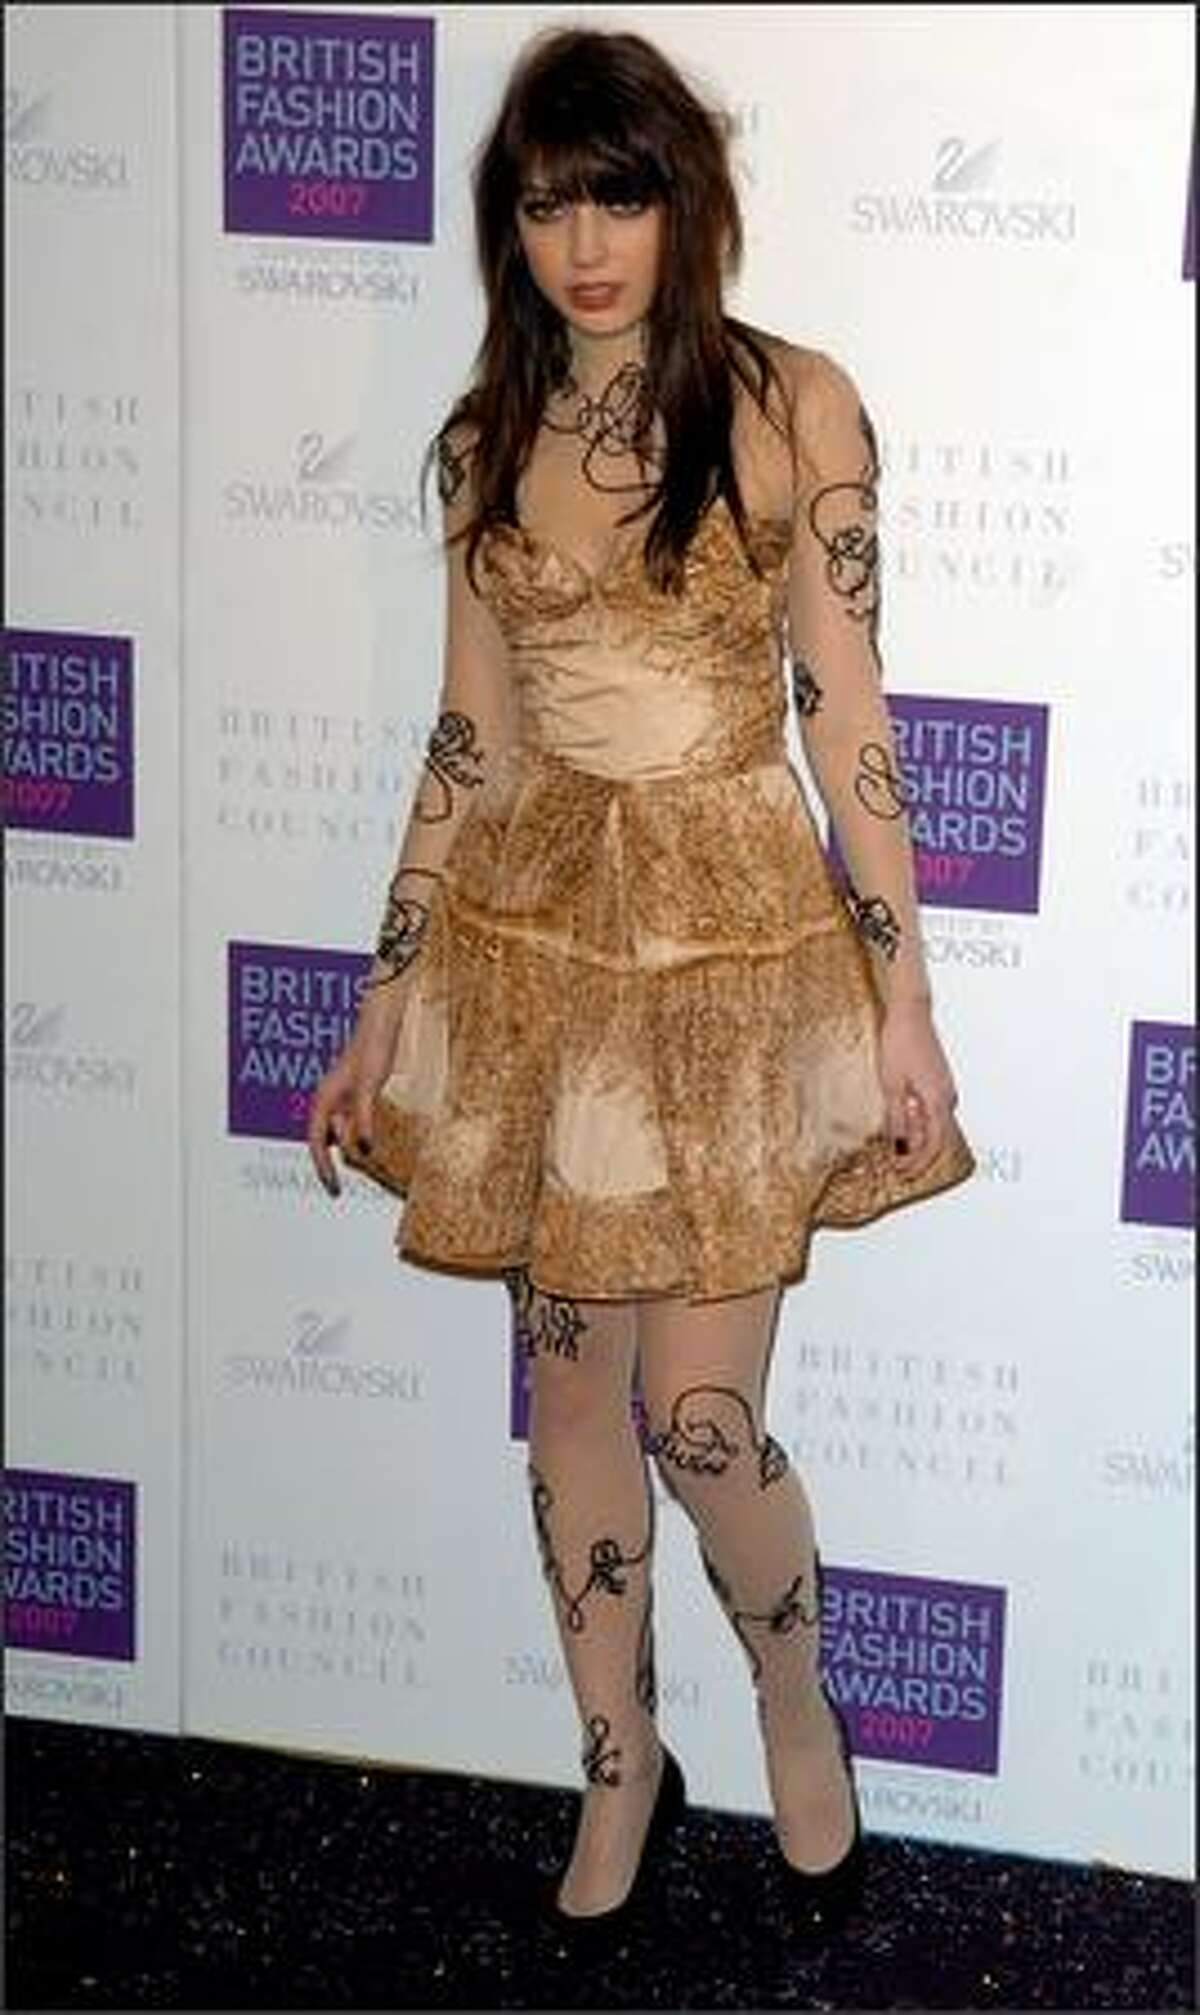 Model Daisy Lowe arrives for the British Fashion Awards at the Royal Horticultural Halls on November 27, 2007 in London, England.